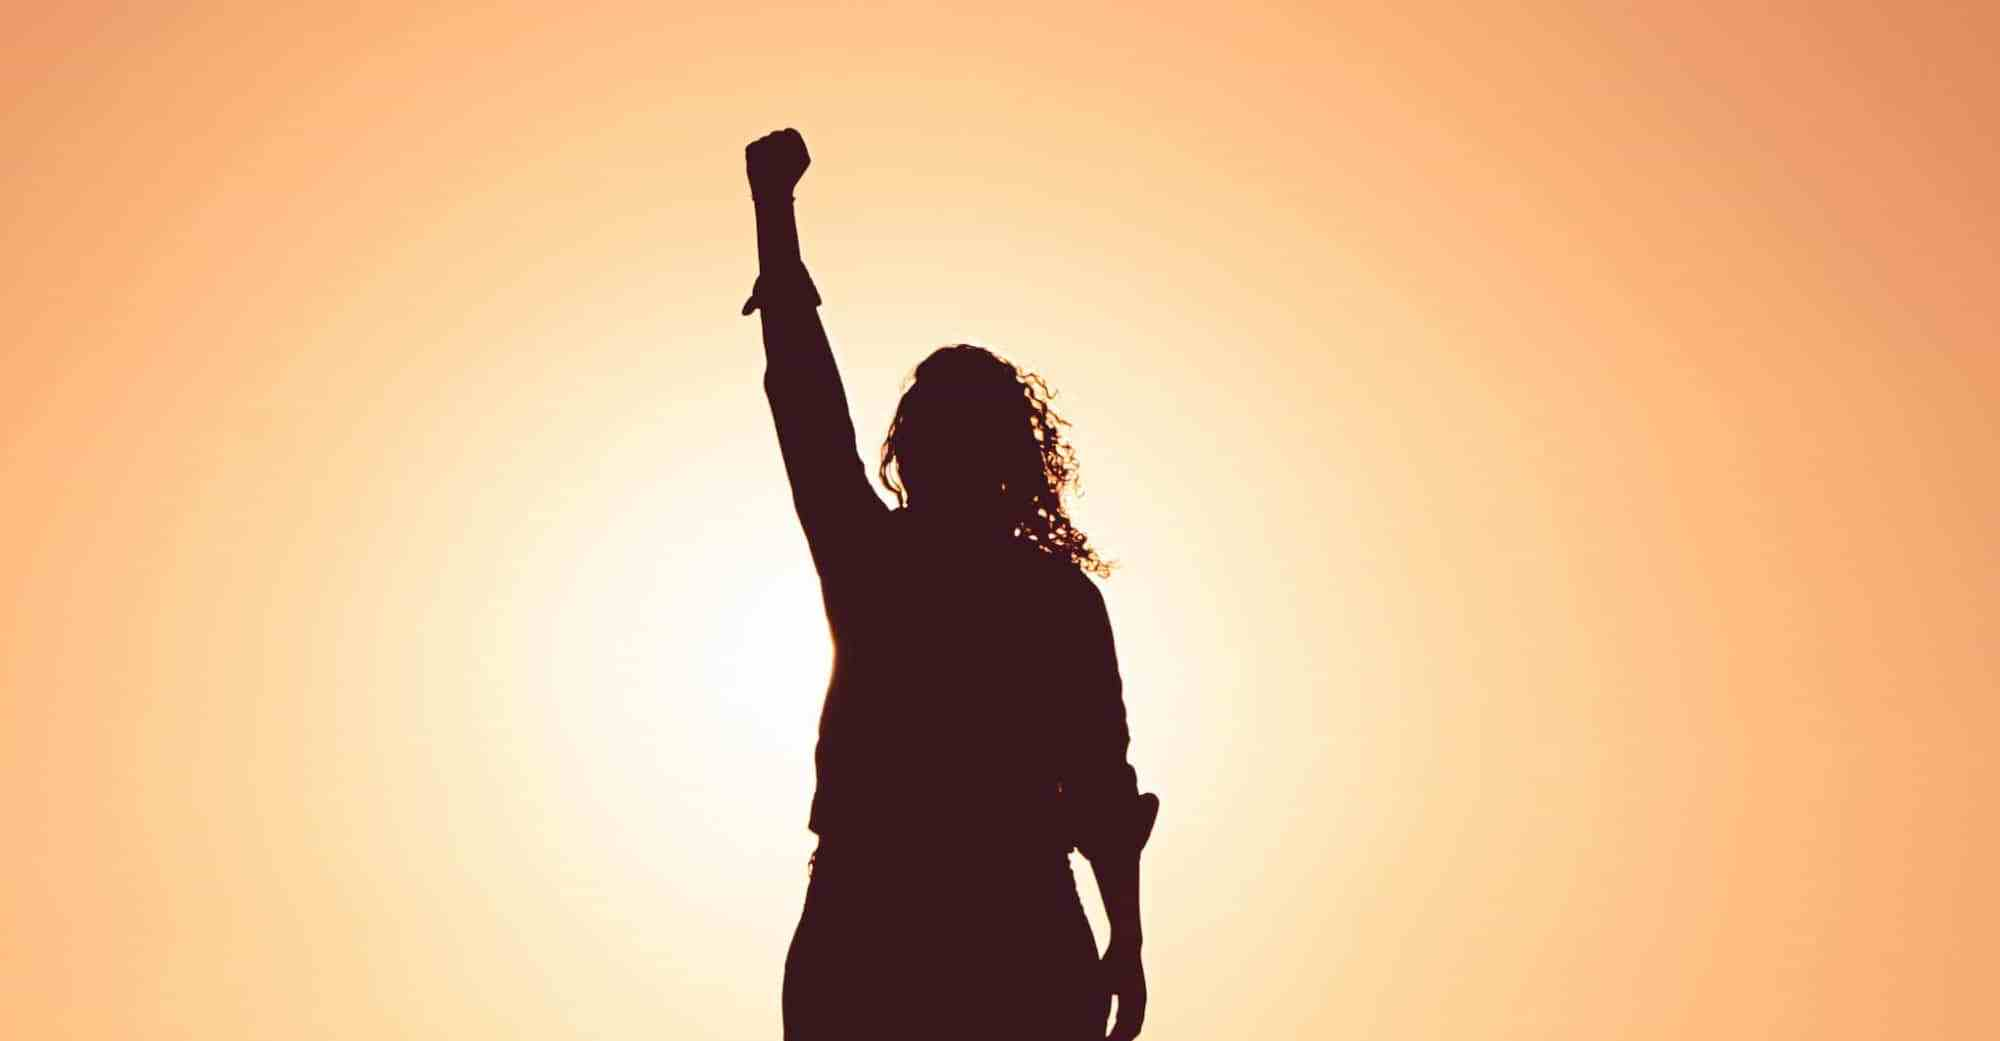 Image of woman, fist in the air